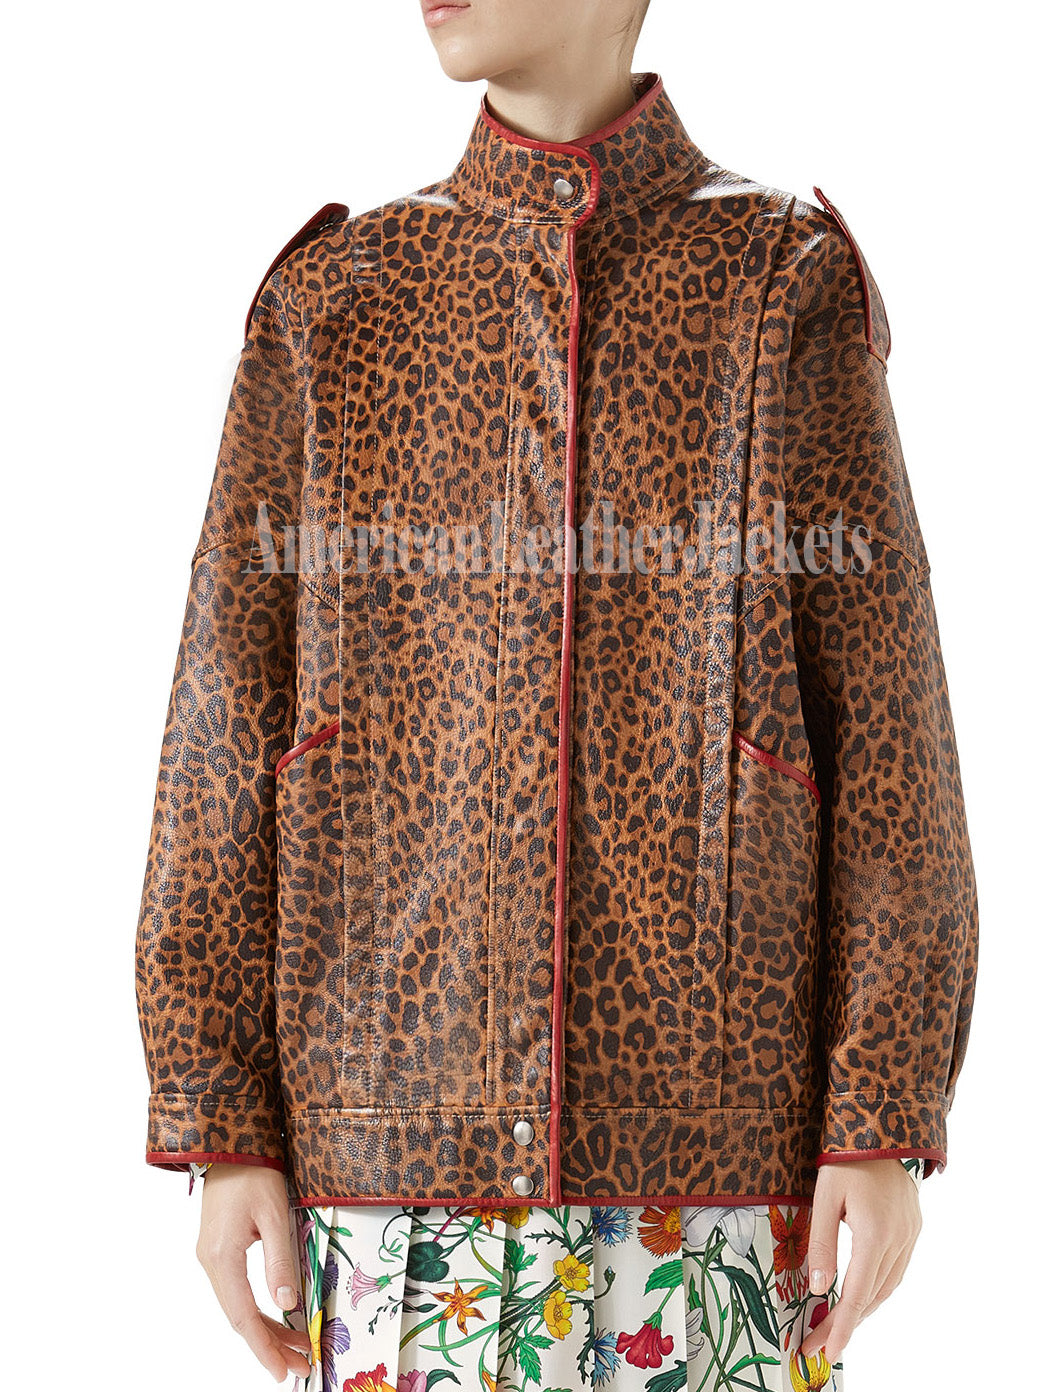 Leopard-Print Leather Women Jacket